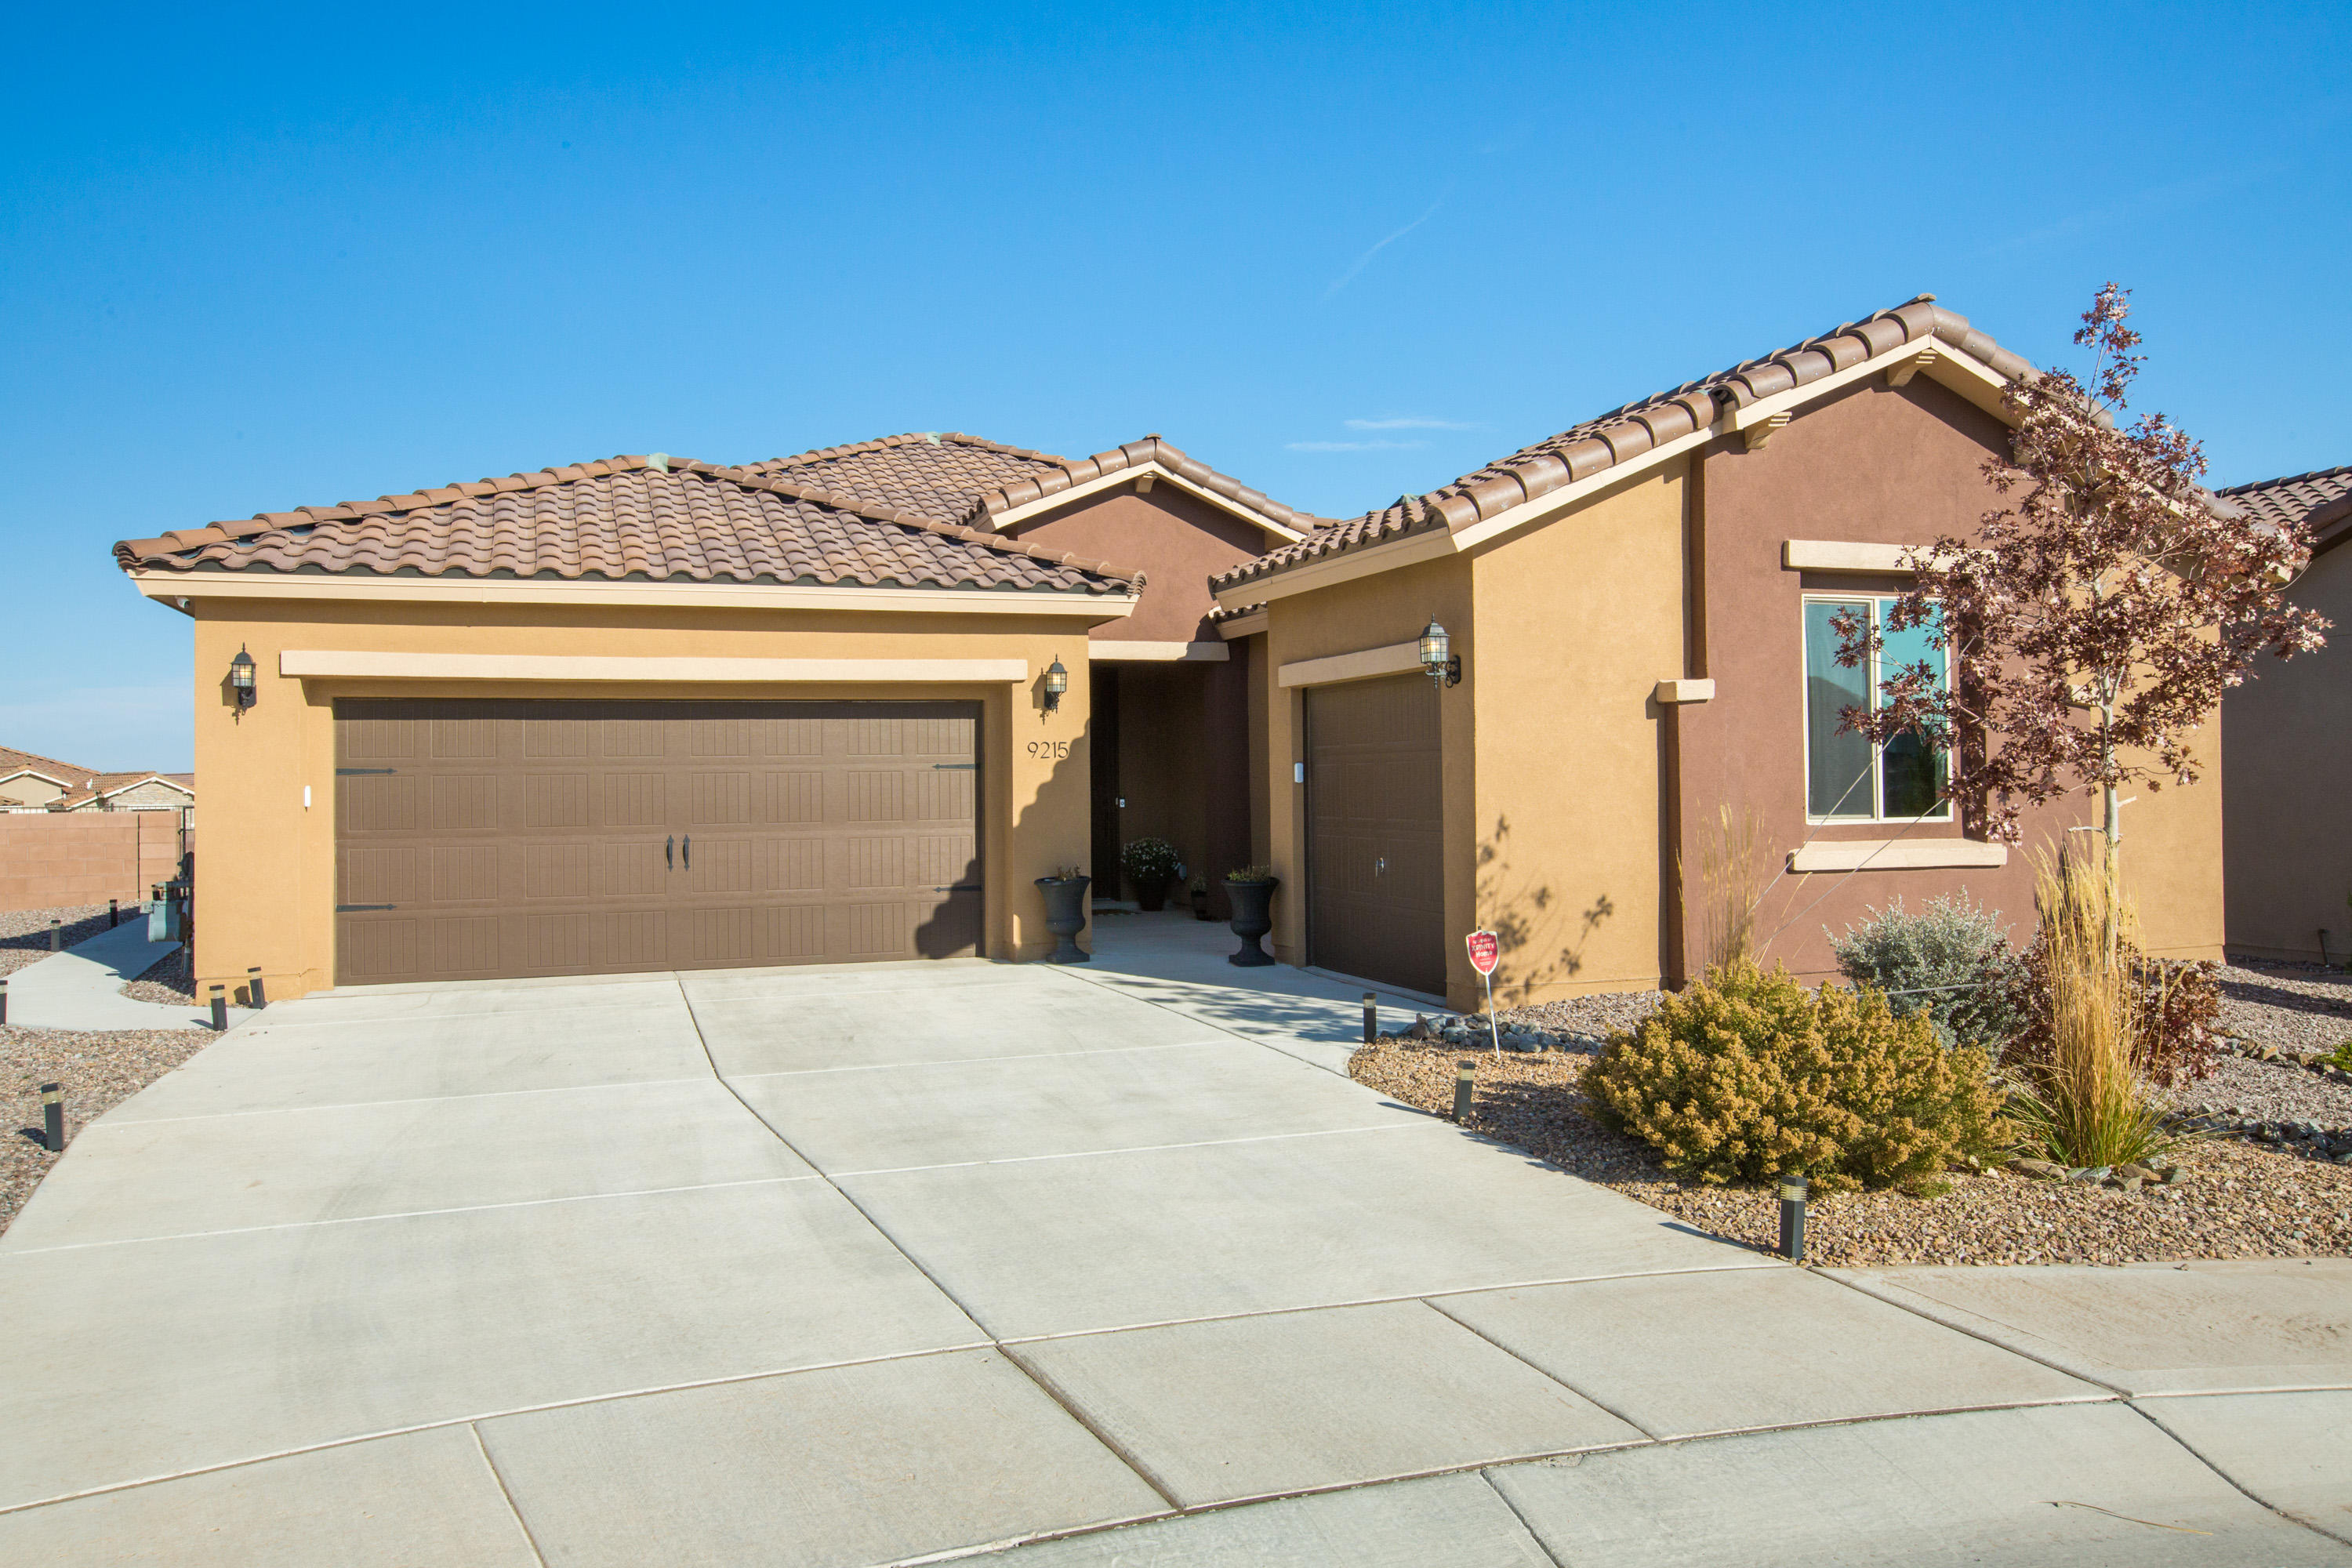 Gorgeous single story Pulte home located on a  large lot w/ with unobstructed views in the Mirehaven community! Home features 2,665sf with 4 bedrooms, 3.5 bathrooms, an office and 3 car garage! Gourmet kitchen with upgraded white cabinetry, gray quartz countertops, subway tile backsplash, built-in oven/microwave, gas cook-top, range hood, pantry and a large island with seating space for everyone! Separate family dining space. Beautiful living area with a fireplace and double slider showcasing the stunning views! Owners suite with tray ceiling and a private spa-like bath. Bath hosts dual sinks, a relaxing garden tub, walk-in shower & closet w/ built-in shelving. Double doors separate the office for privacy! Amazing backyard, full walled w/ a built-in fireplace! Just steps from Mirehaven par